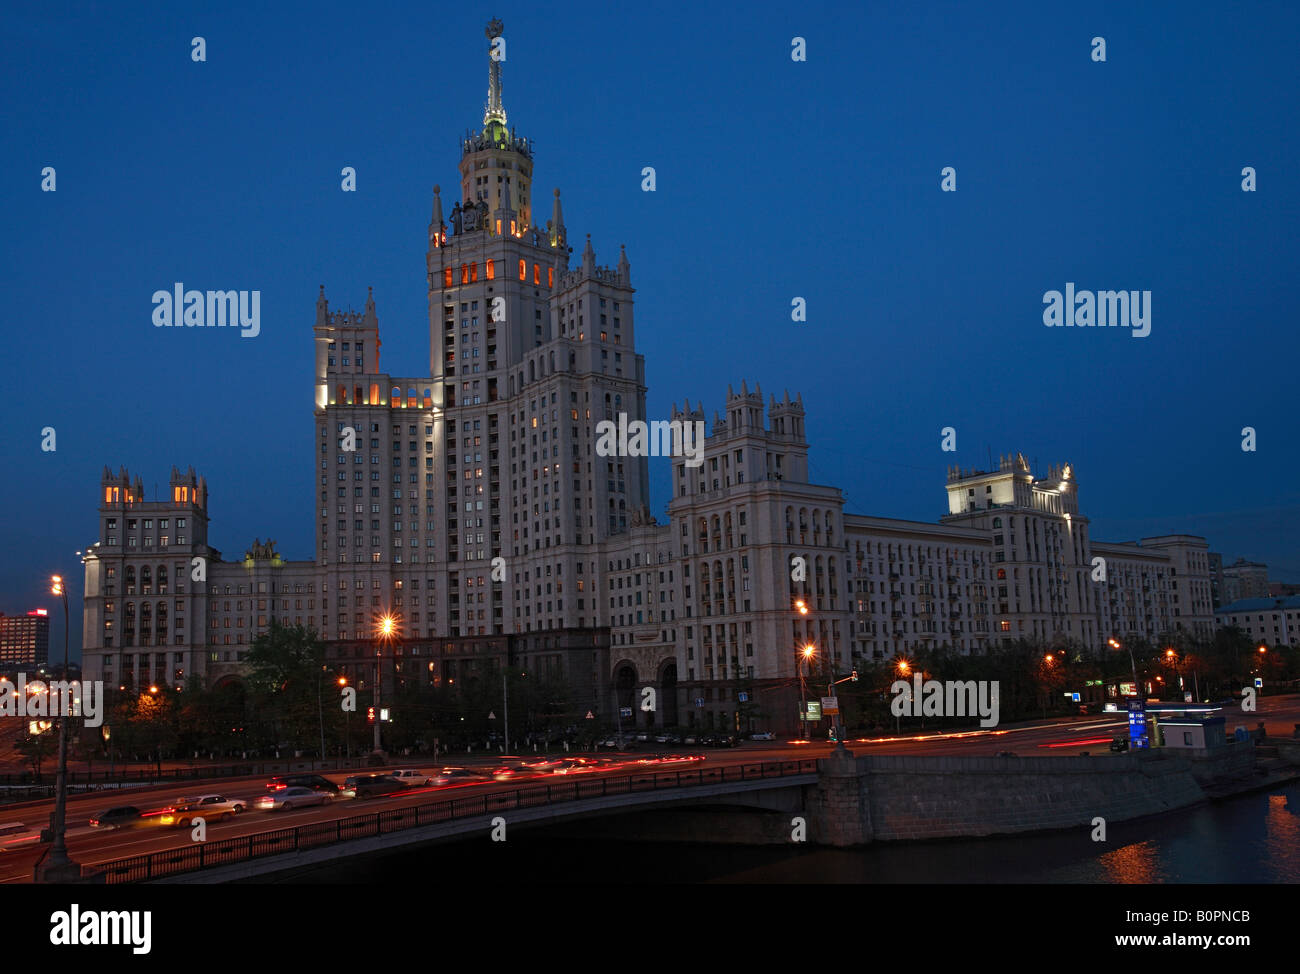 A night view at the stalinist building at the Kotelnichesky embankment - Stock Image